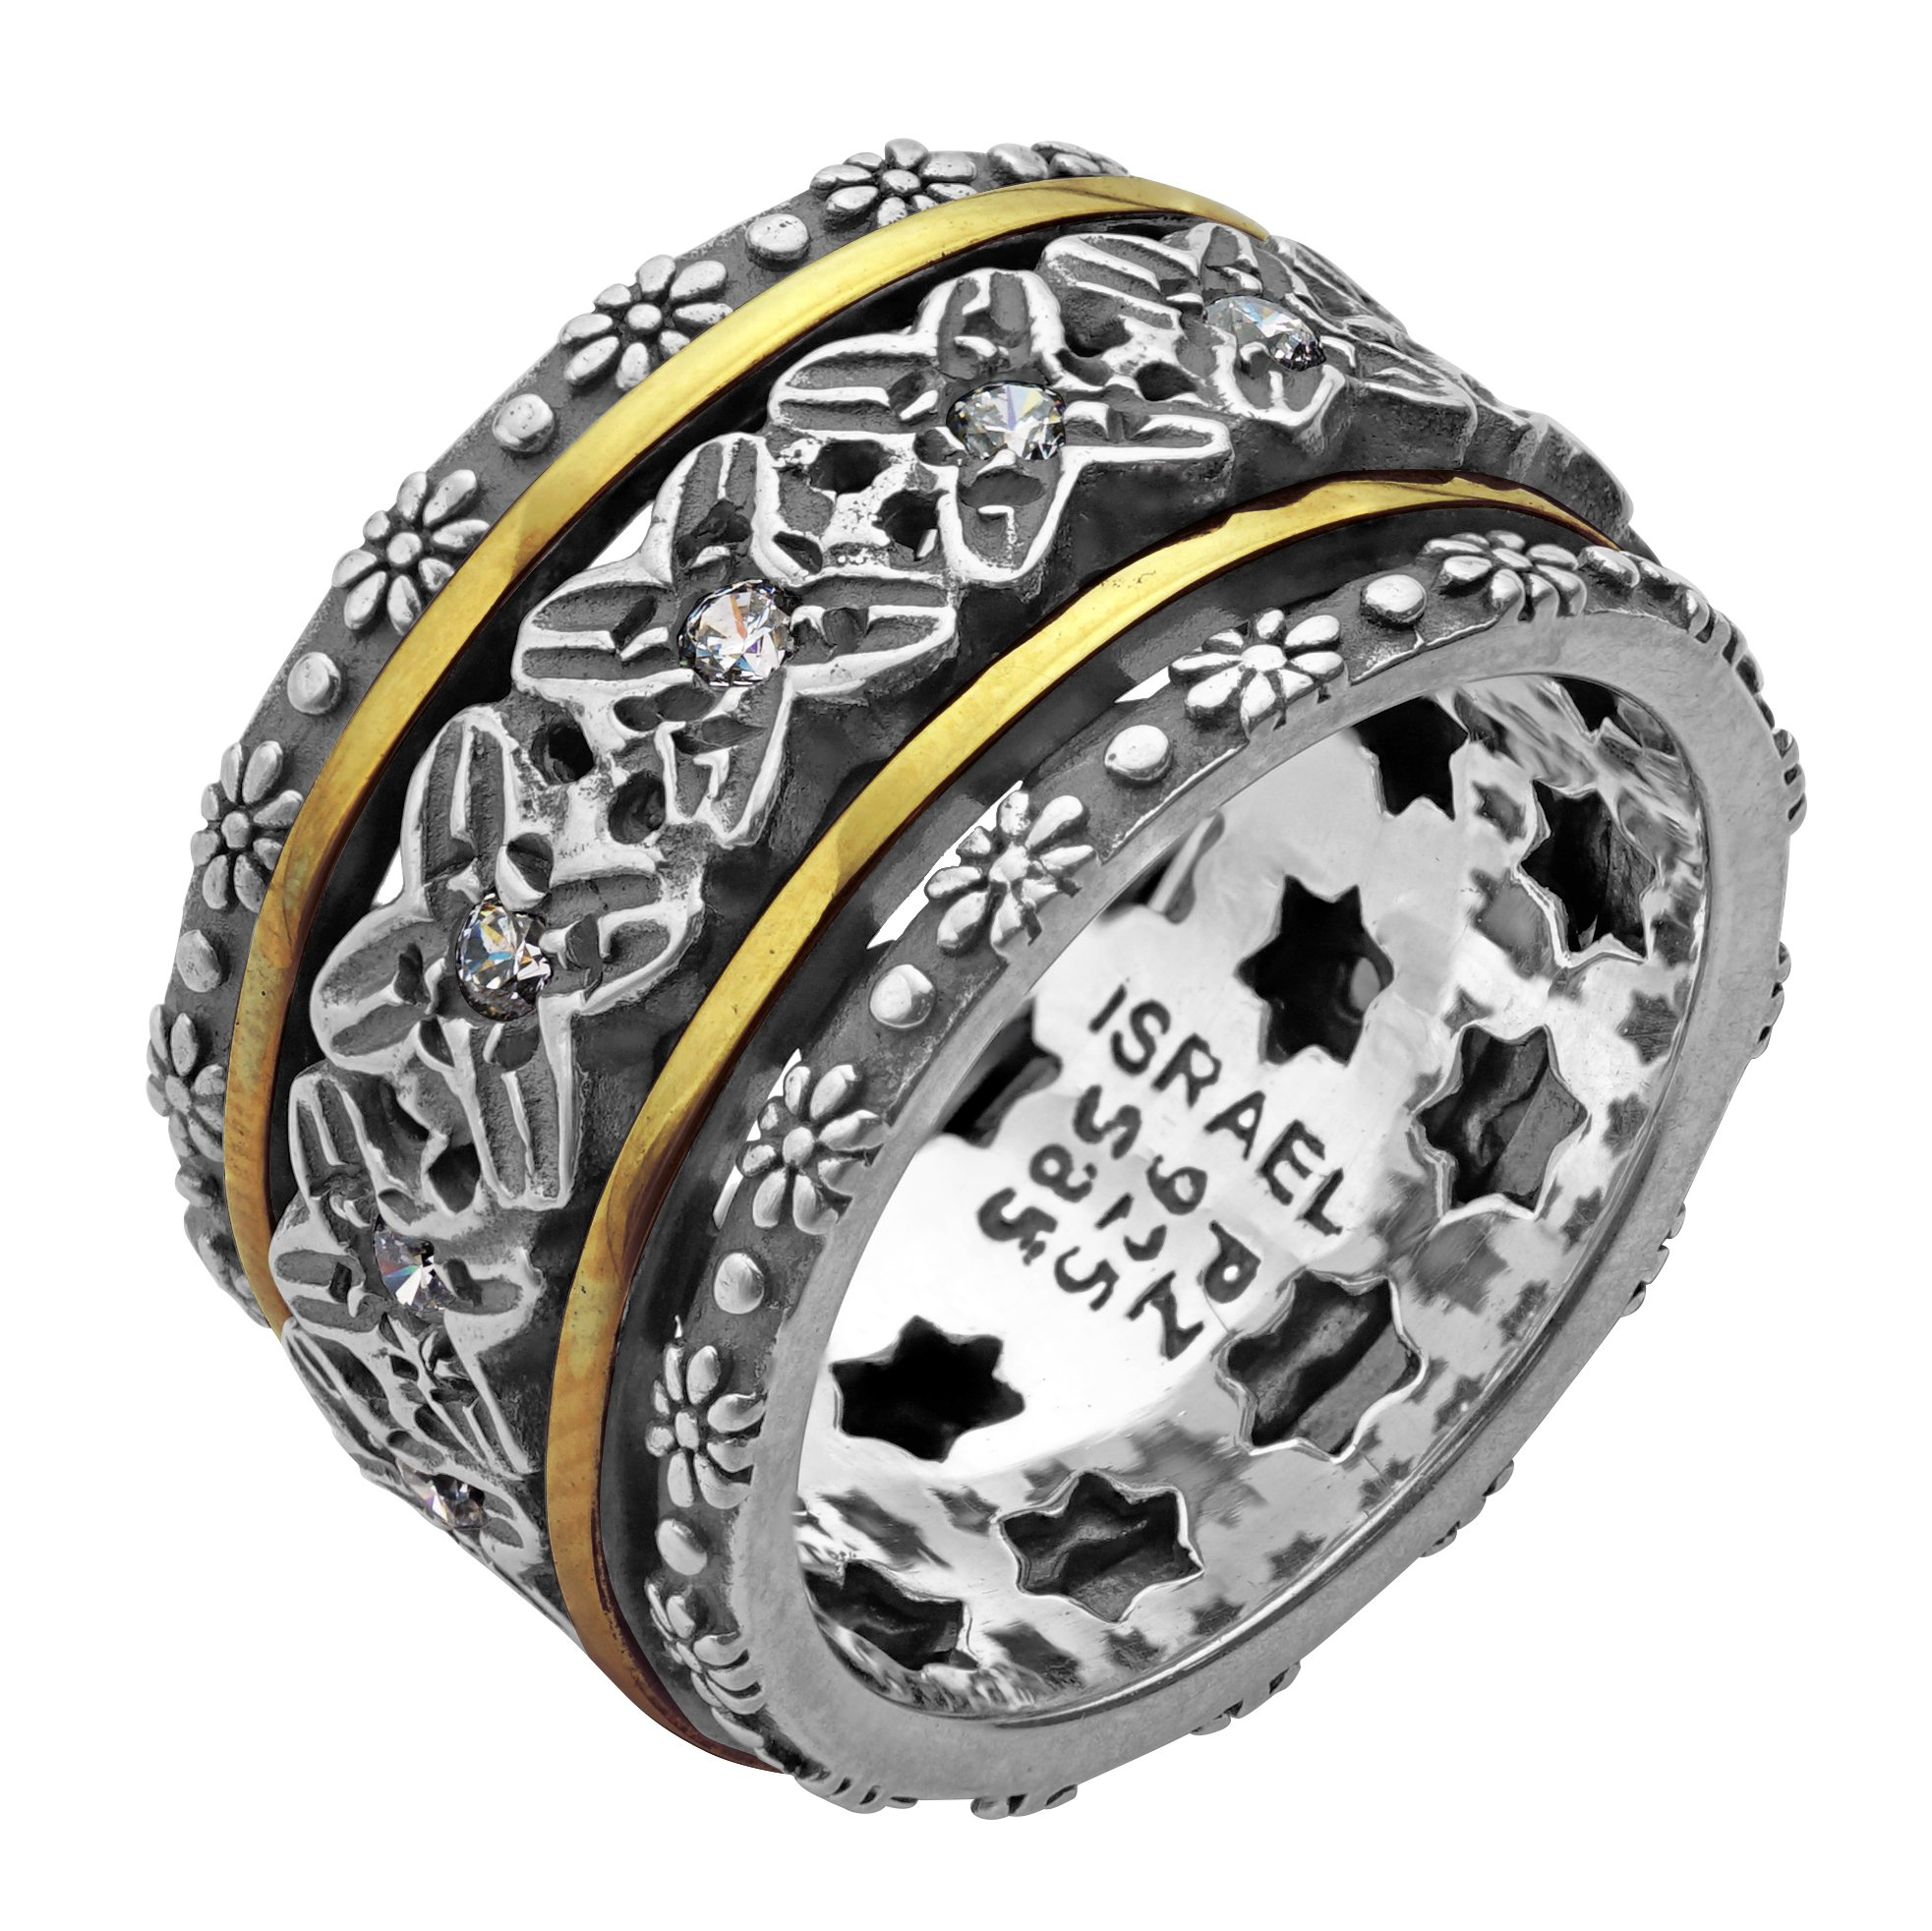 Paz Creations .925 Sterling Silver and 14K Yellow Gold Spinner Ring (8), Made in Israel